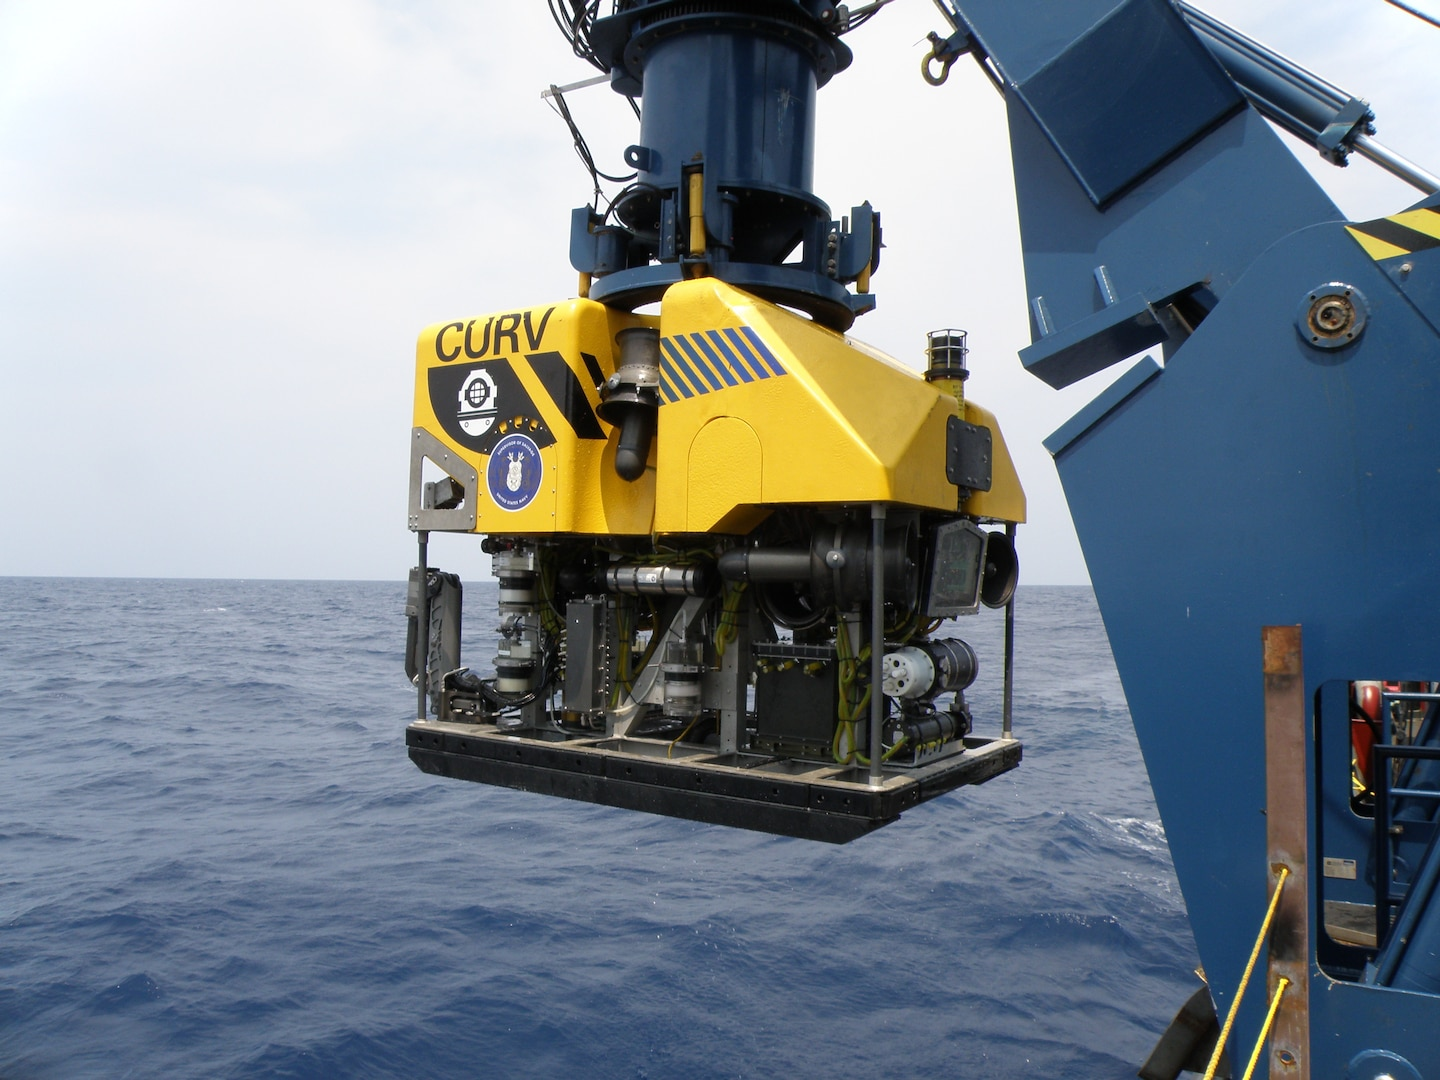 CURV 21 is a 6,400 pound Remotely Operated Vehicle (ROV) that is designed to meet the US Navy's deep ocean salvage requirements down to a maximum depth of 20,000 feet of seawater.